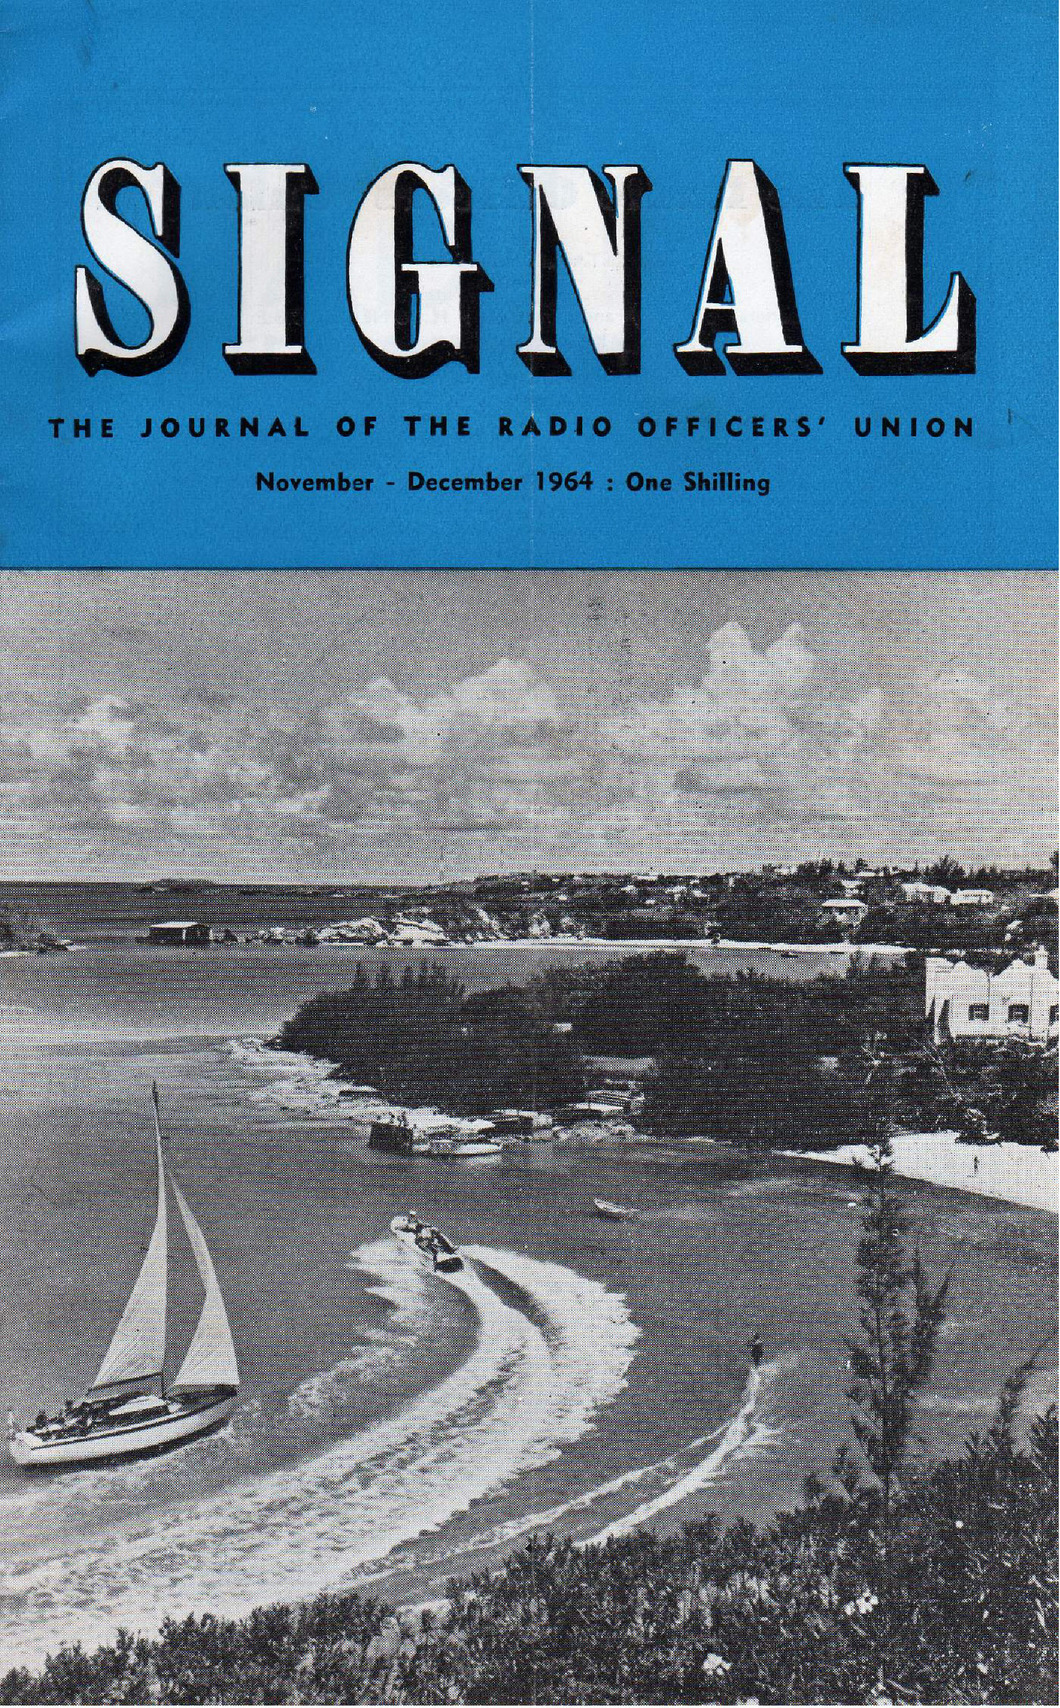 Cover of Signal magazine the journal of the radio officers' union. Image on cover is a yacht and speedboat in a bay